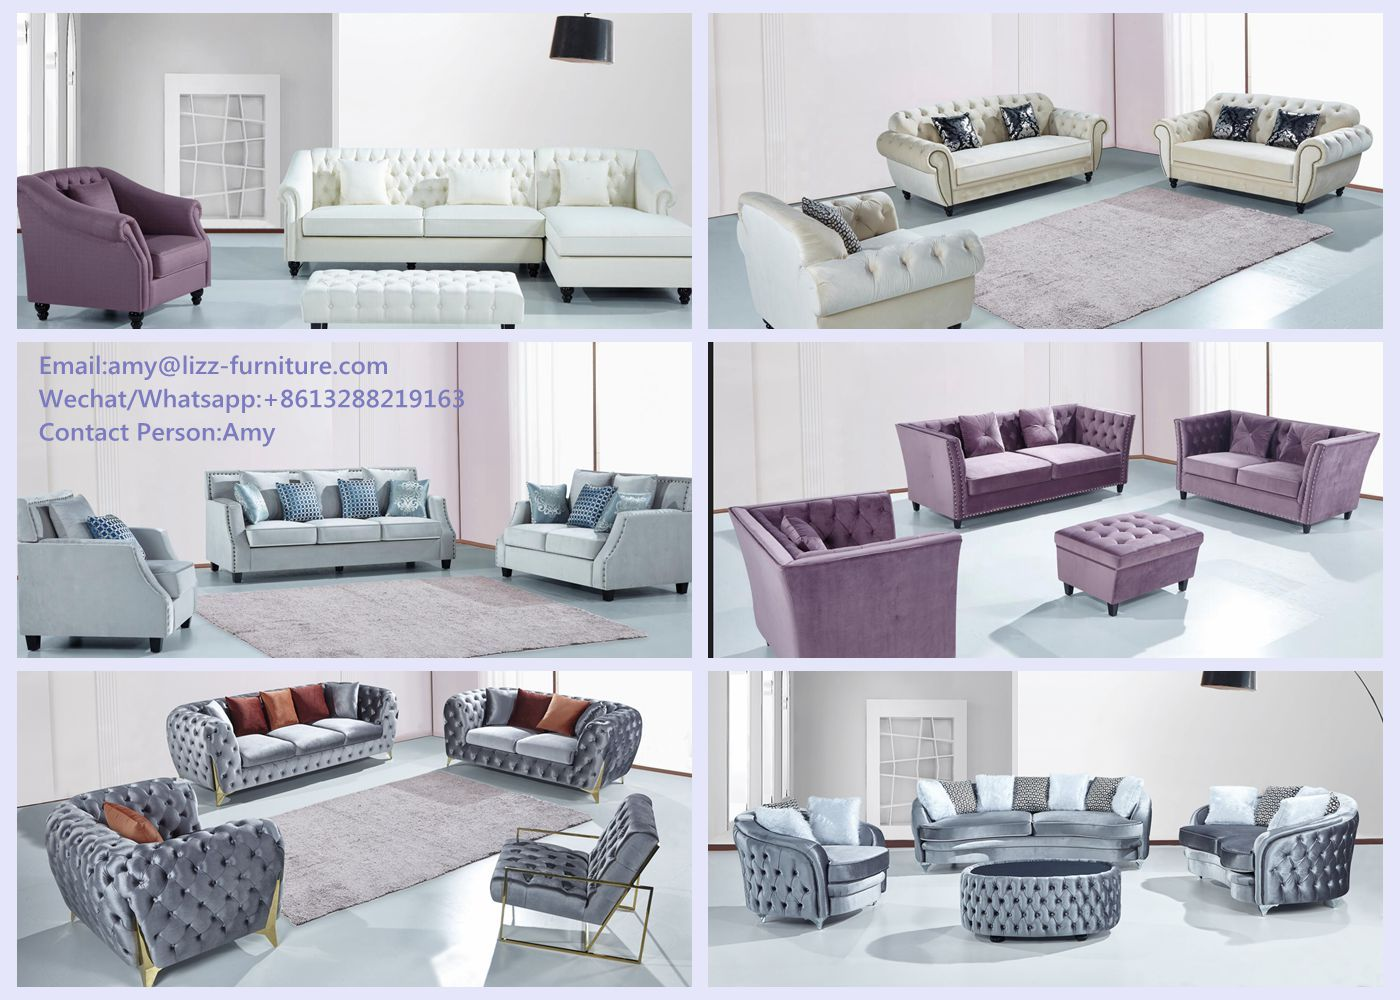 New Arrival Lizz New Design Luxury Fabric Sofa Set Sofa